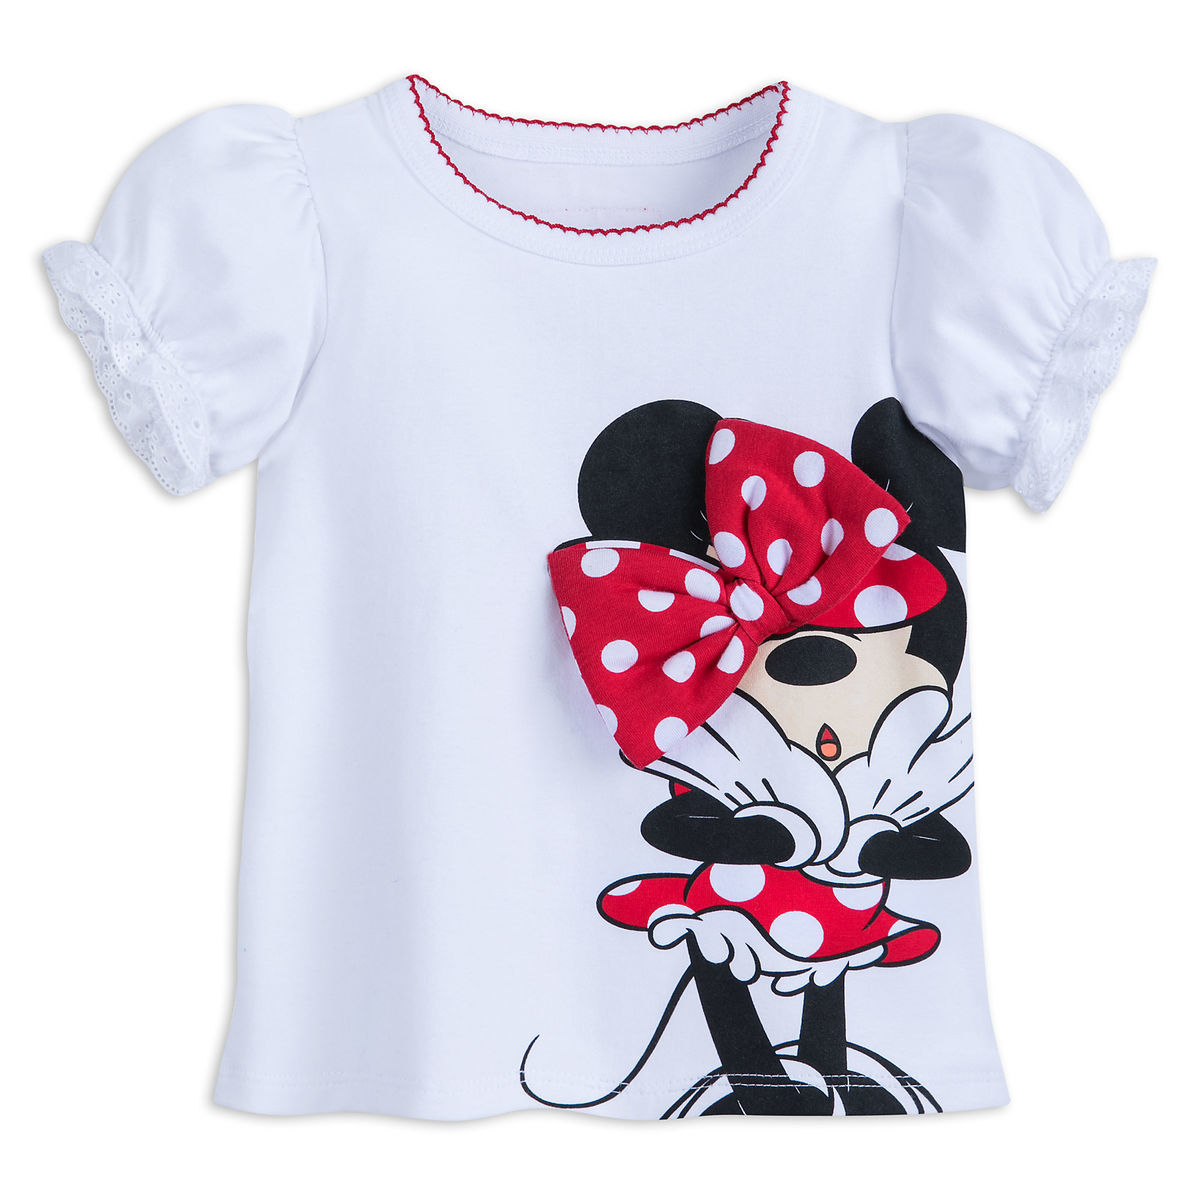 38d5366610 Disney Baby Shirt - Minnie Mouse Bow T-Shirt for Girls